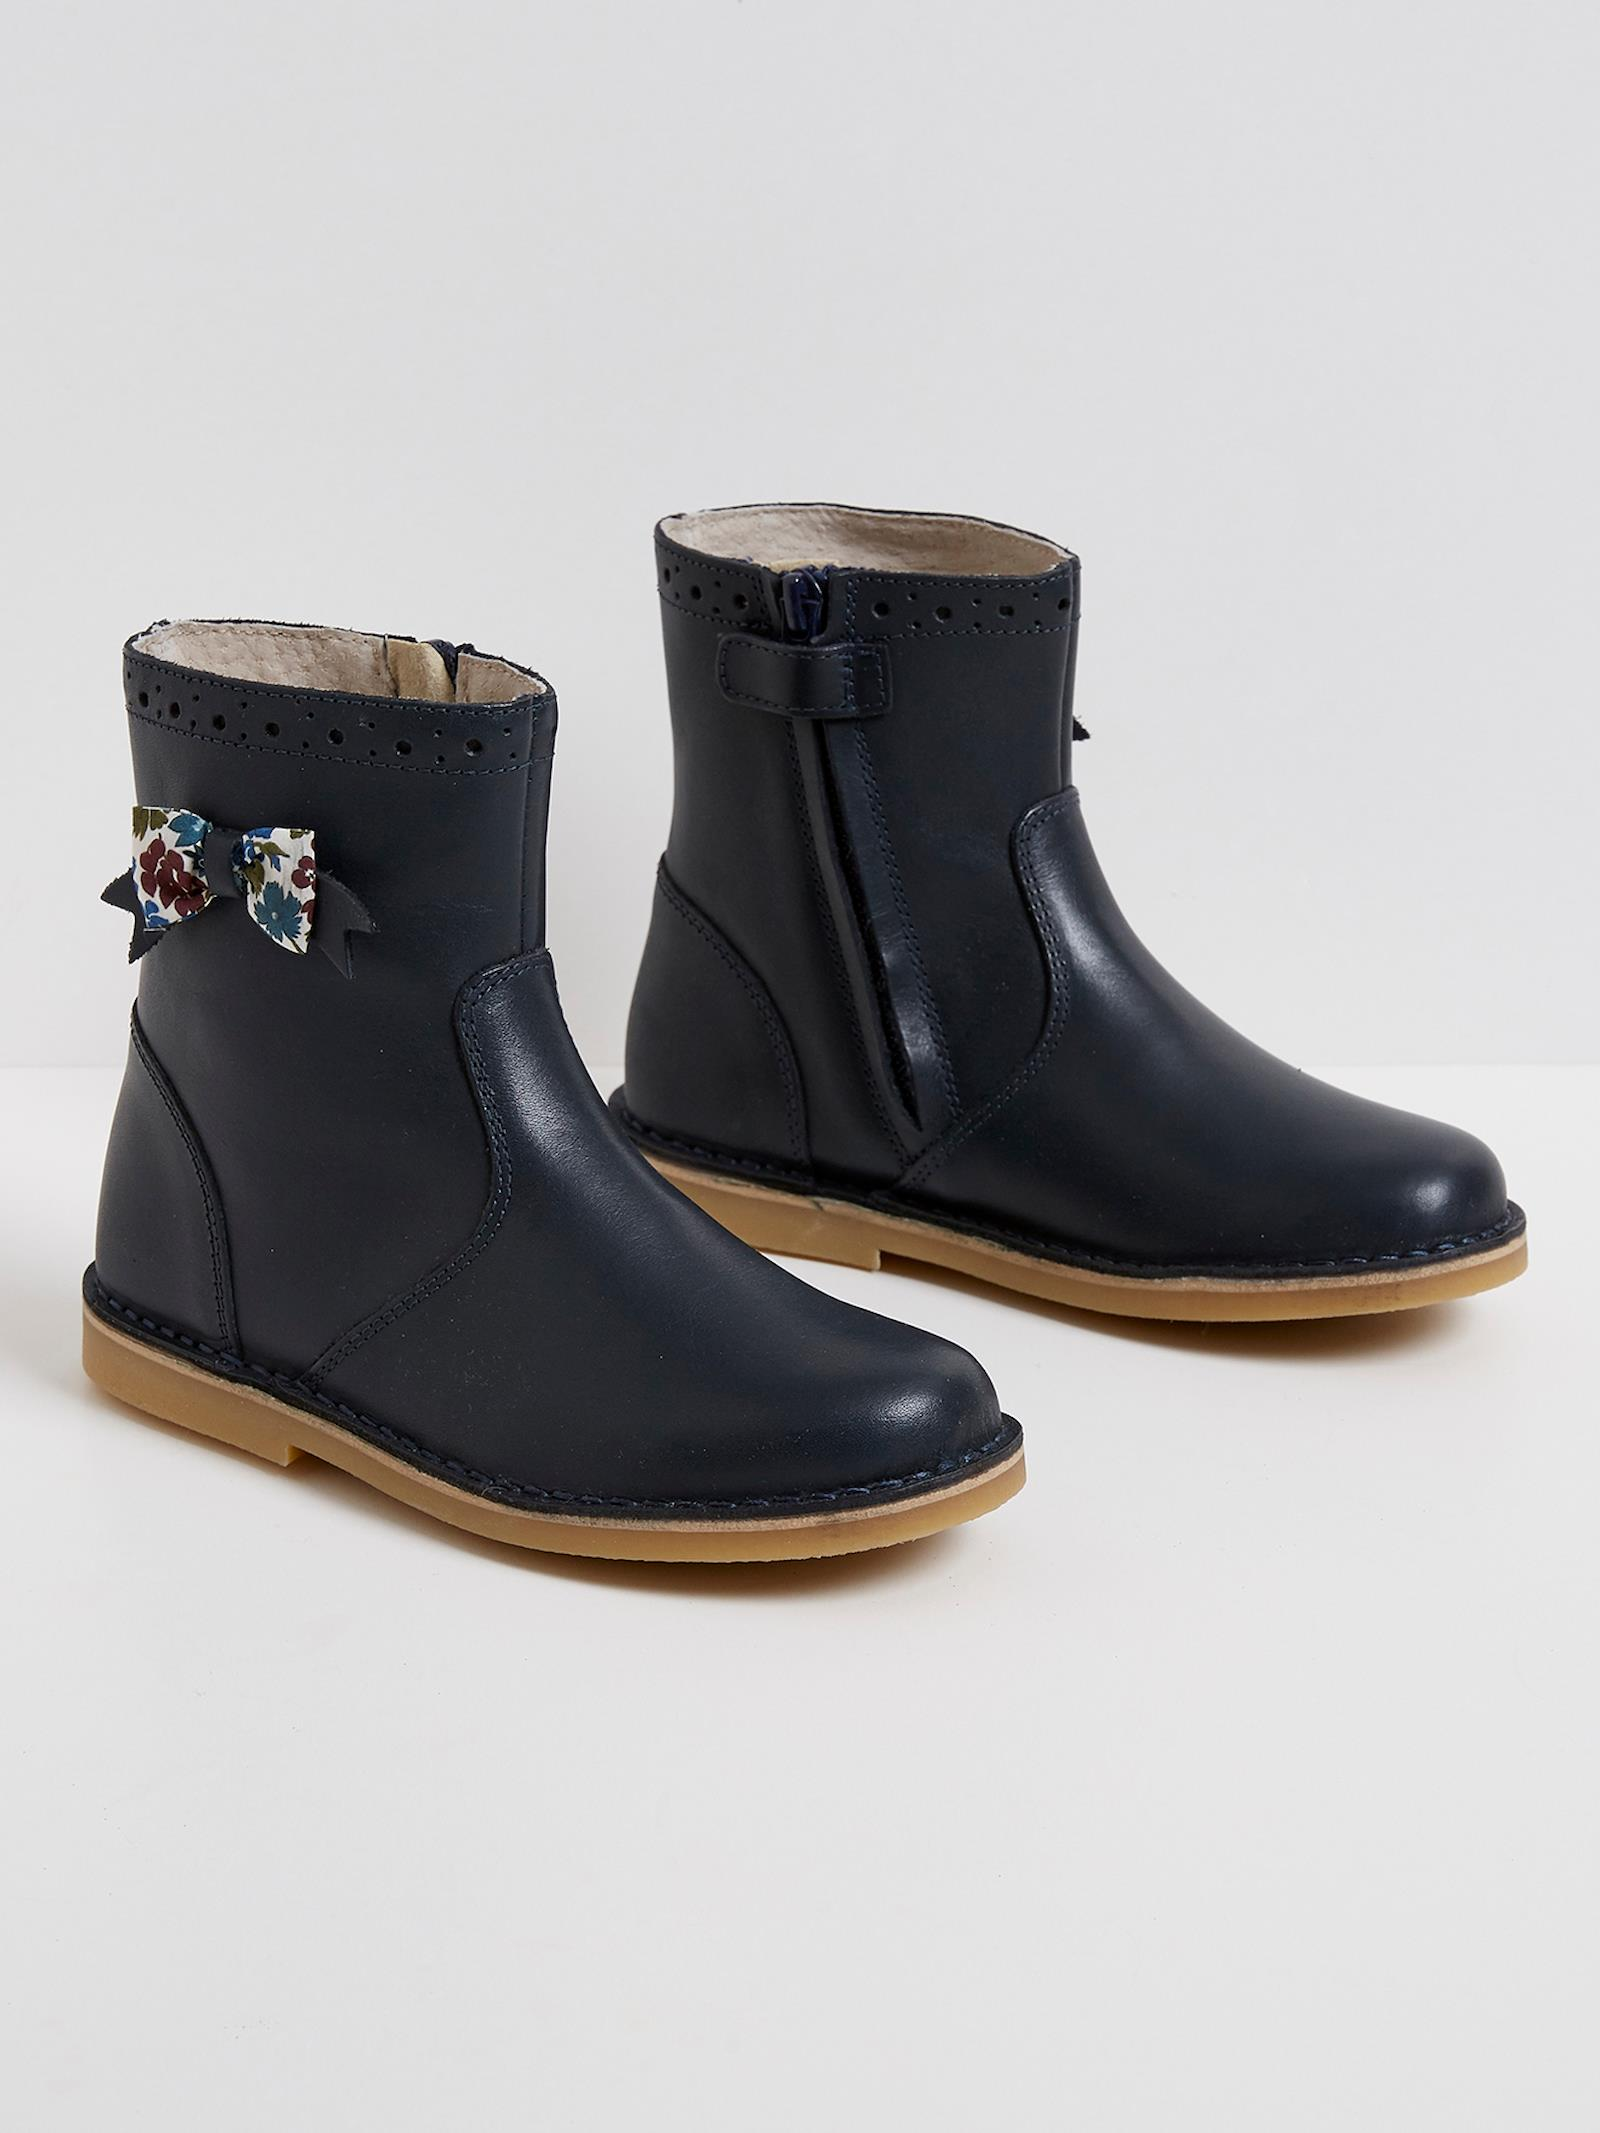 Chaussures fille, baskets fille, chelsea boots, bottines